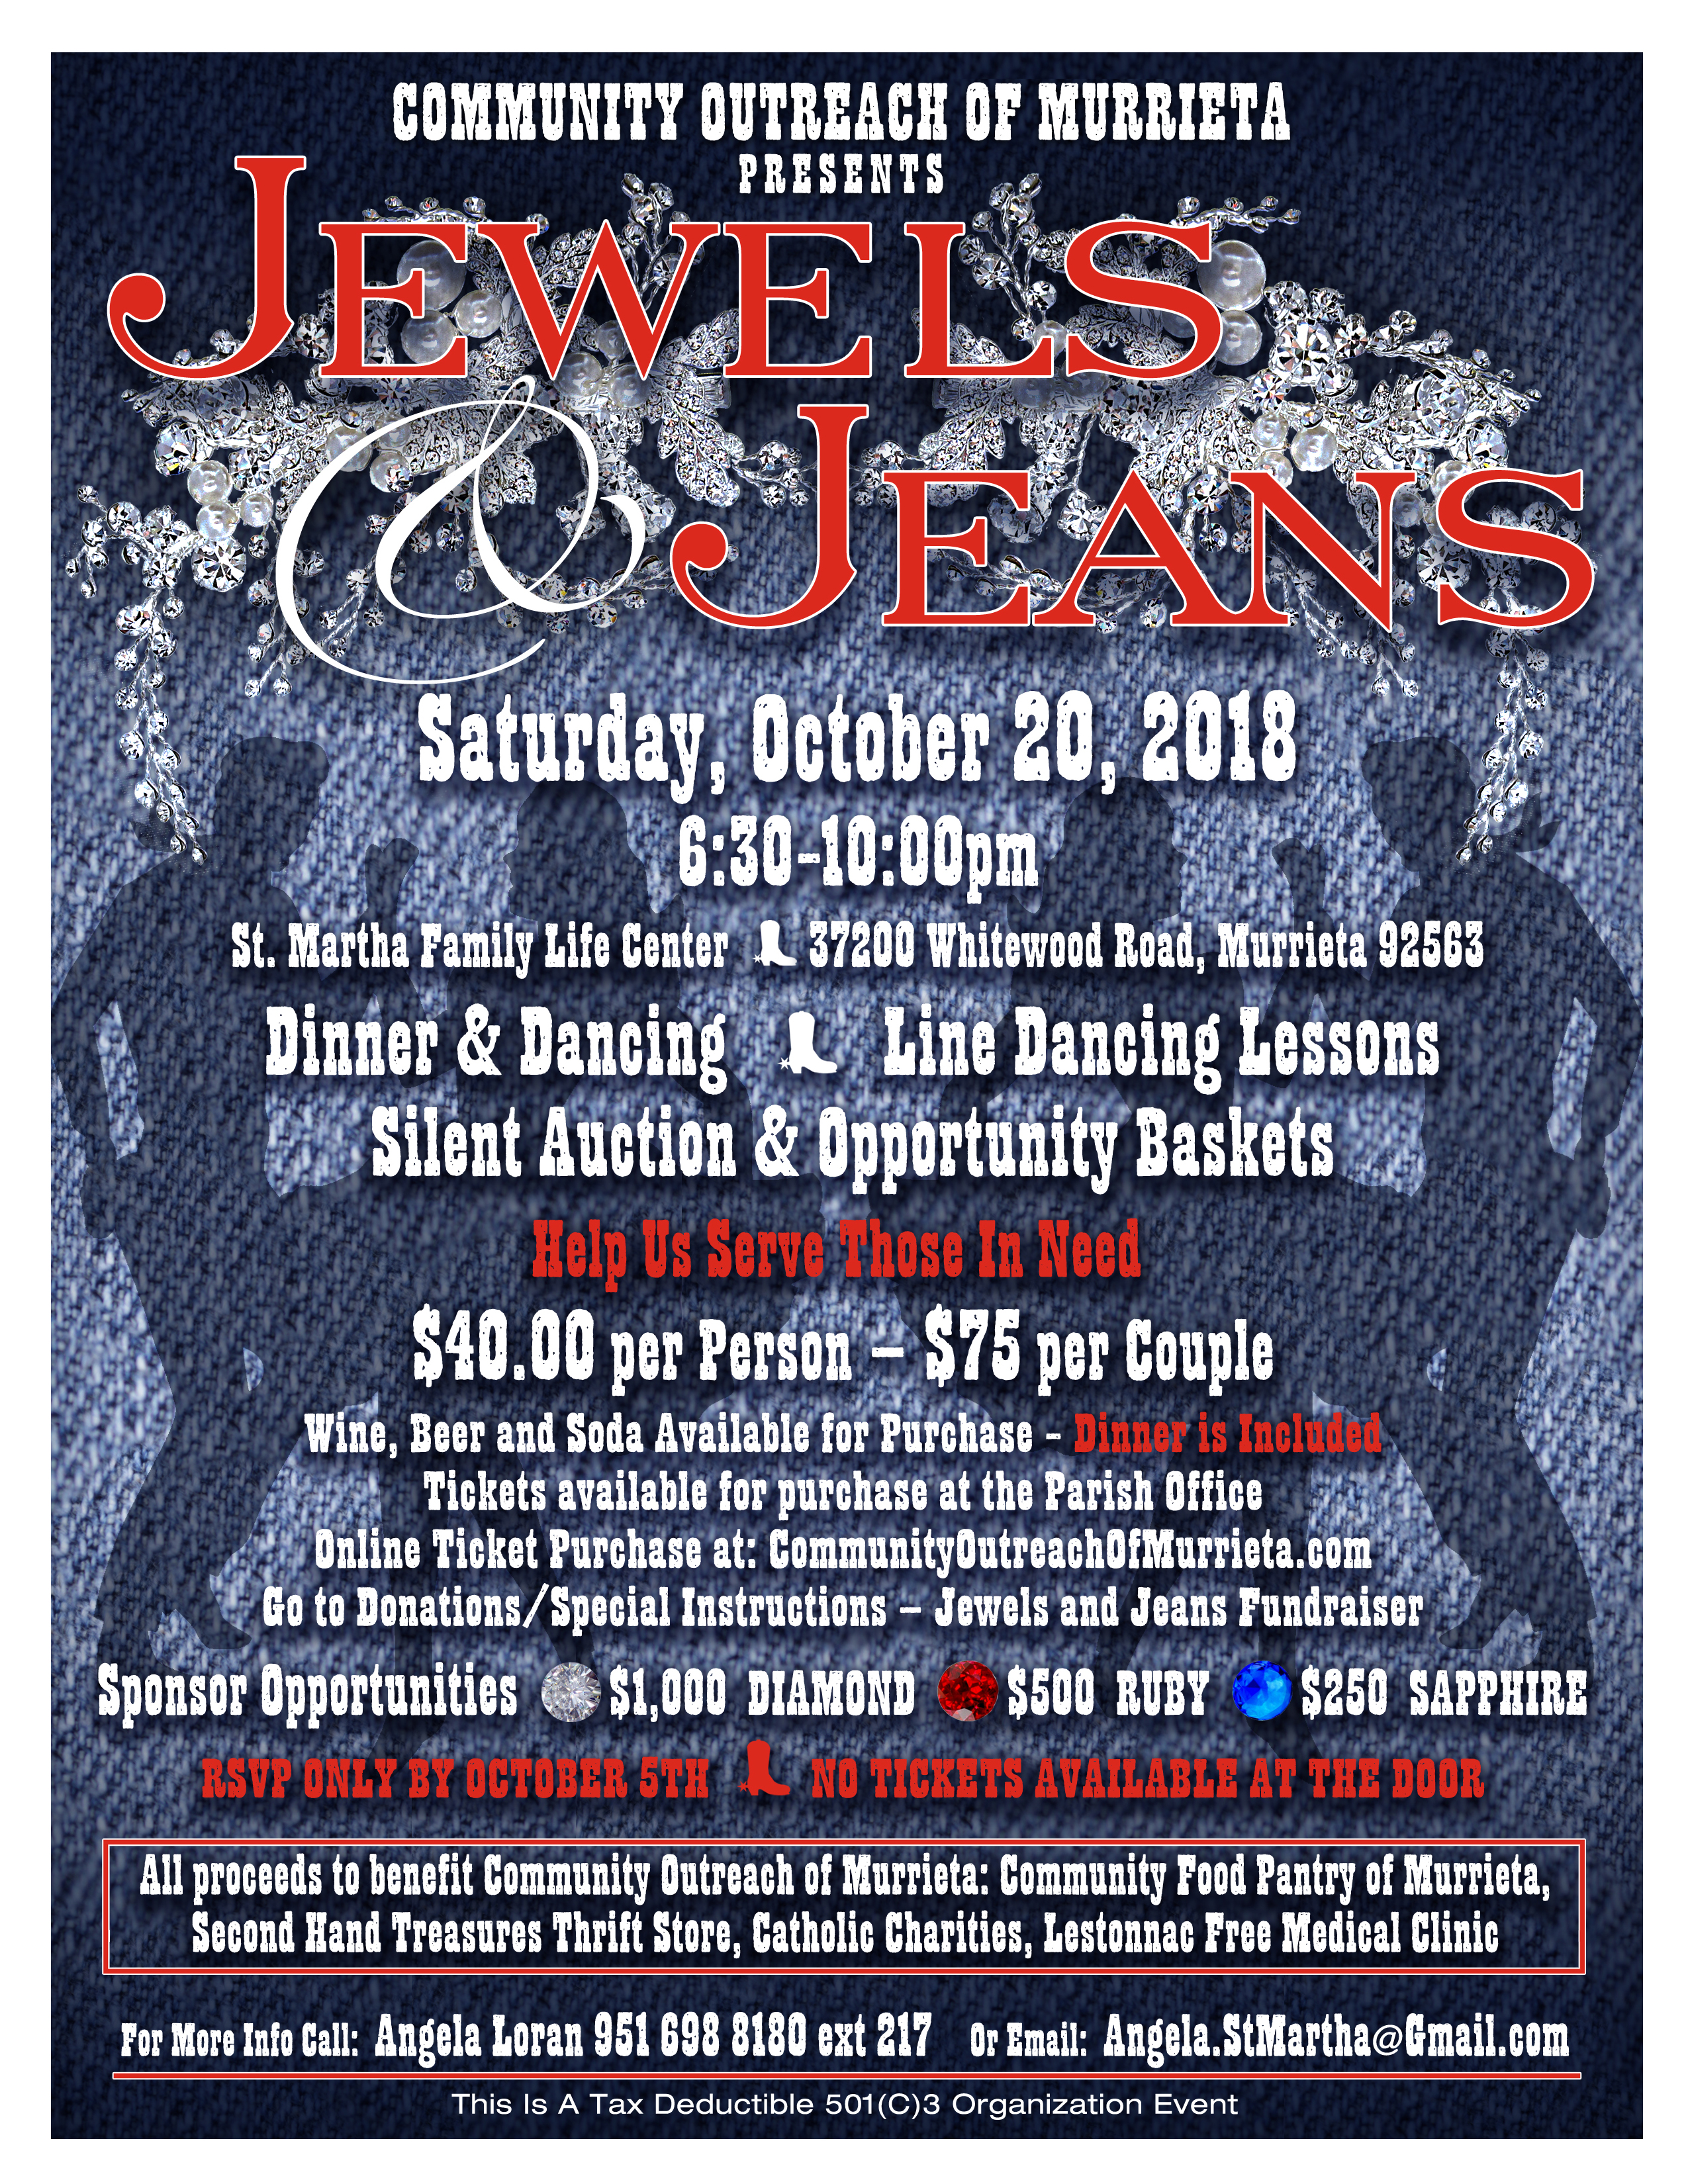 This Event Will Benefit Community Outreach Of Murrieta Food Pantry Second Hand Treasures Thrift Store Catholic Charities